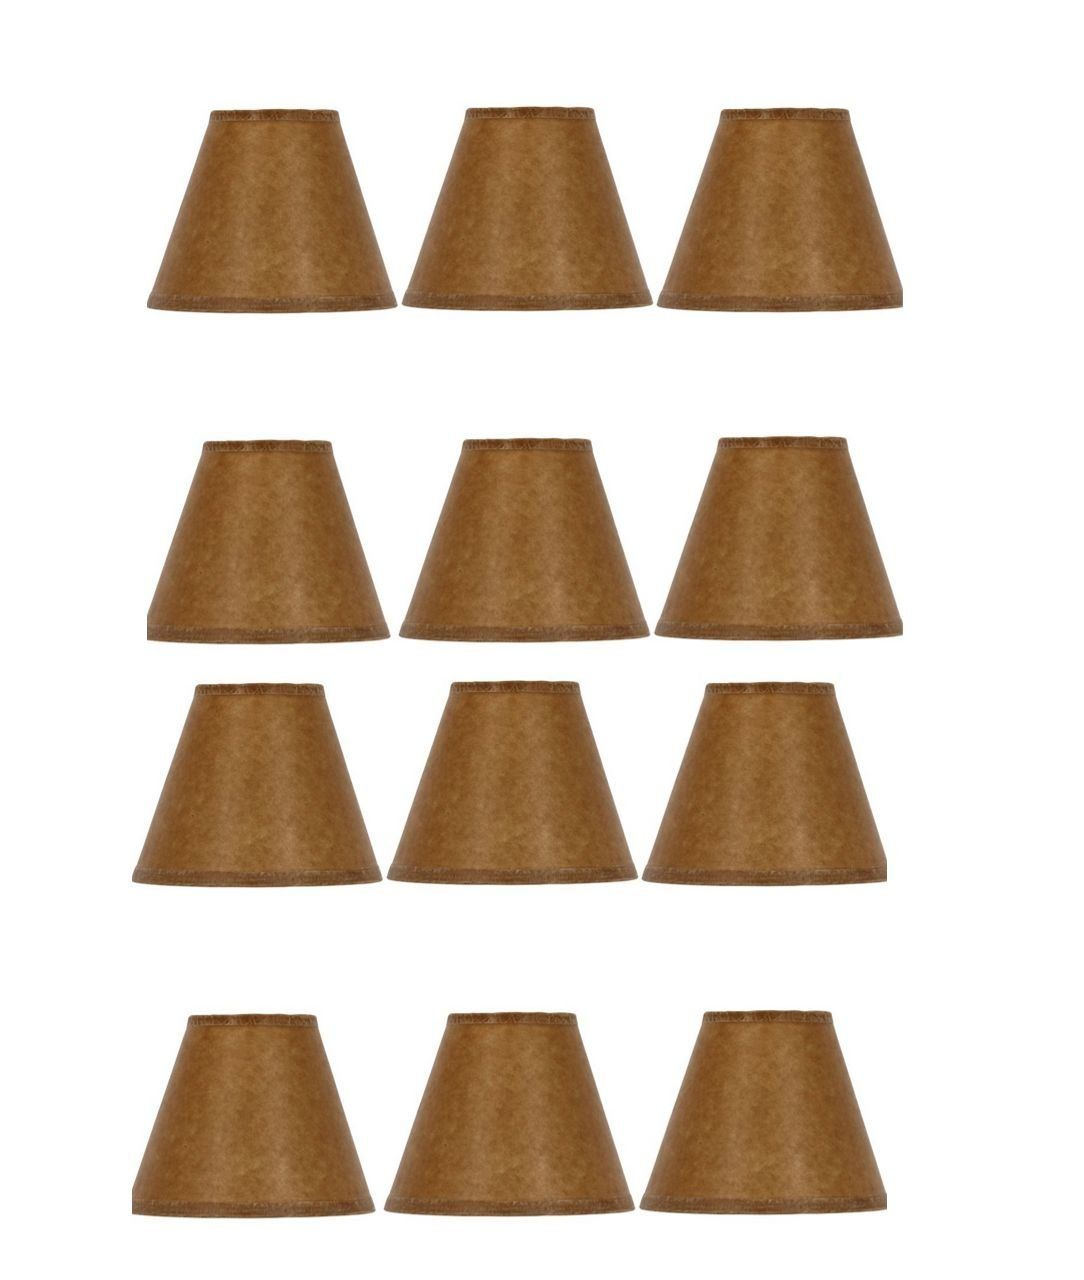 Mini Chandelier Shades Clip On Small Lamp Shade Set Of Twelve Oiled Craft Paper Visit The Image Link Mo Small Lamp Shades Chandelier Shades Mini Chandelier